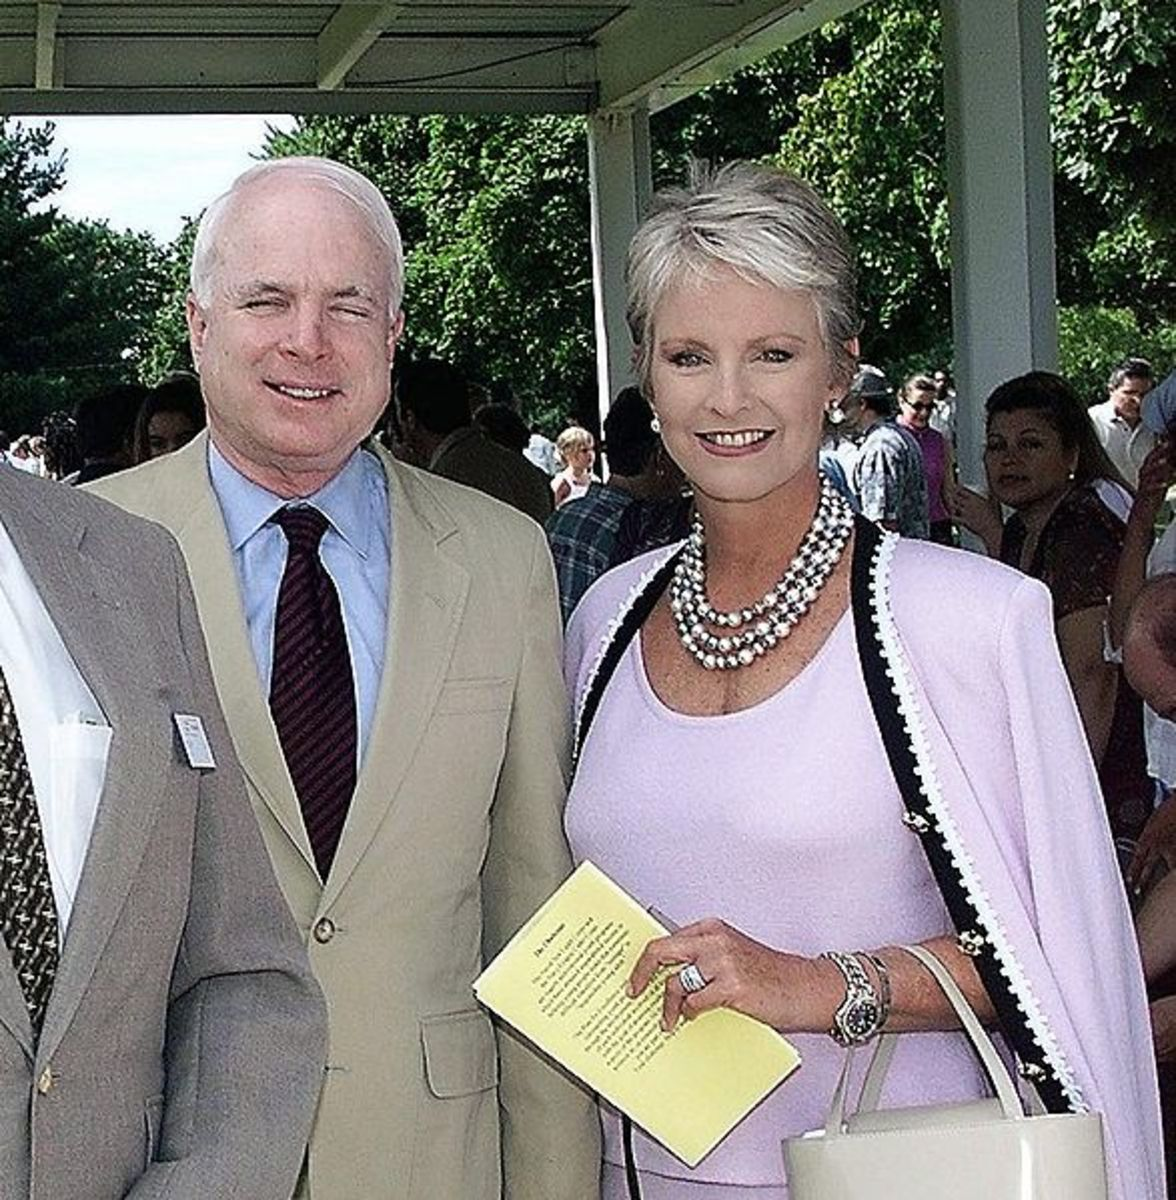 Cindy McCain wearing a 3 strand pearl necklace - photo from wikipedia taken at a graduation with her husband Senator John McCain